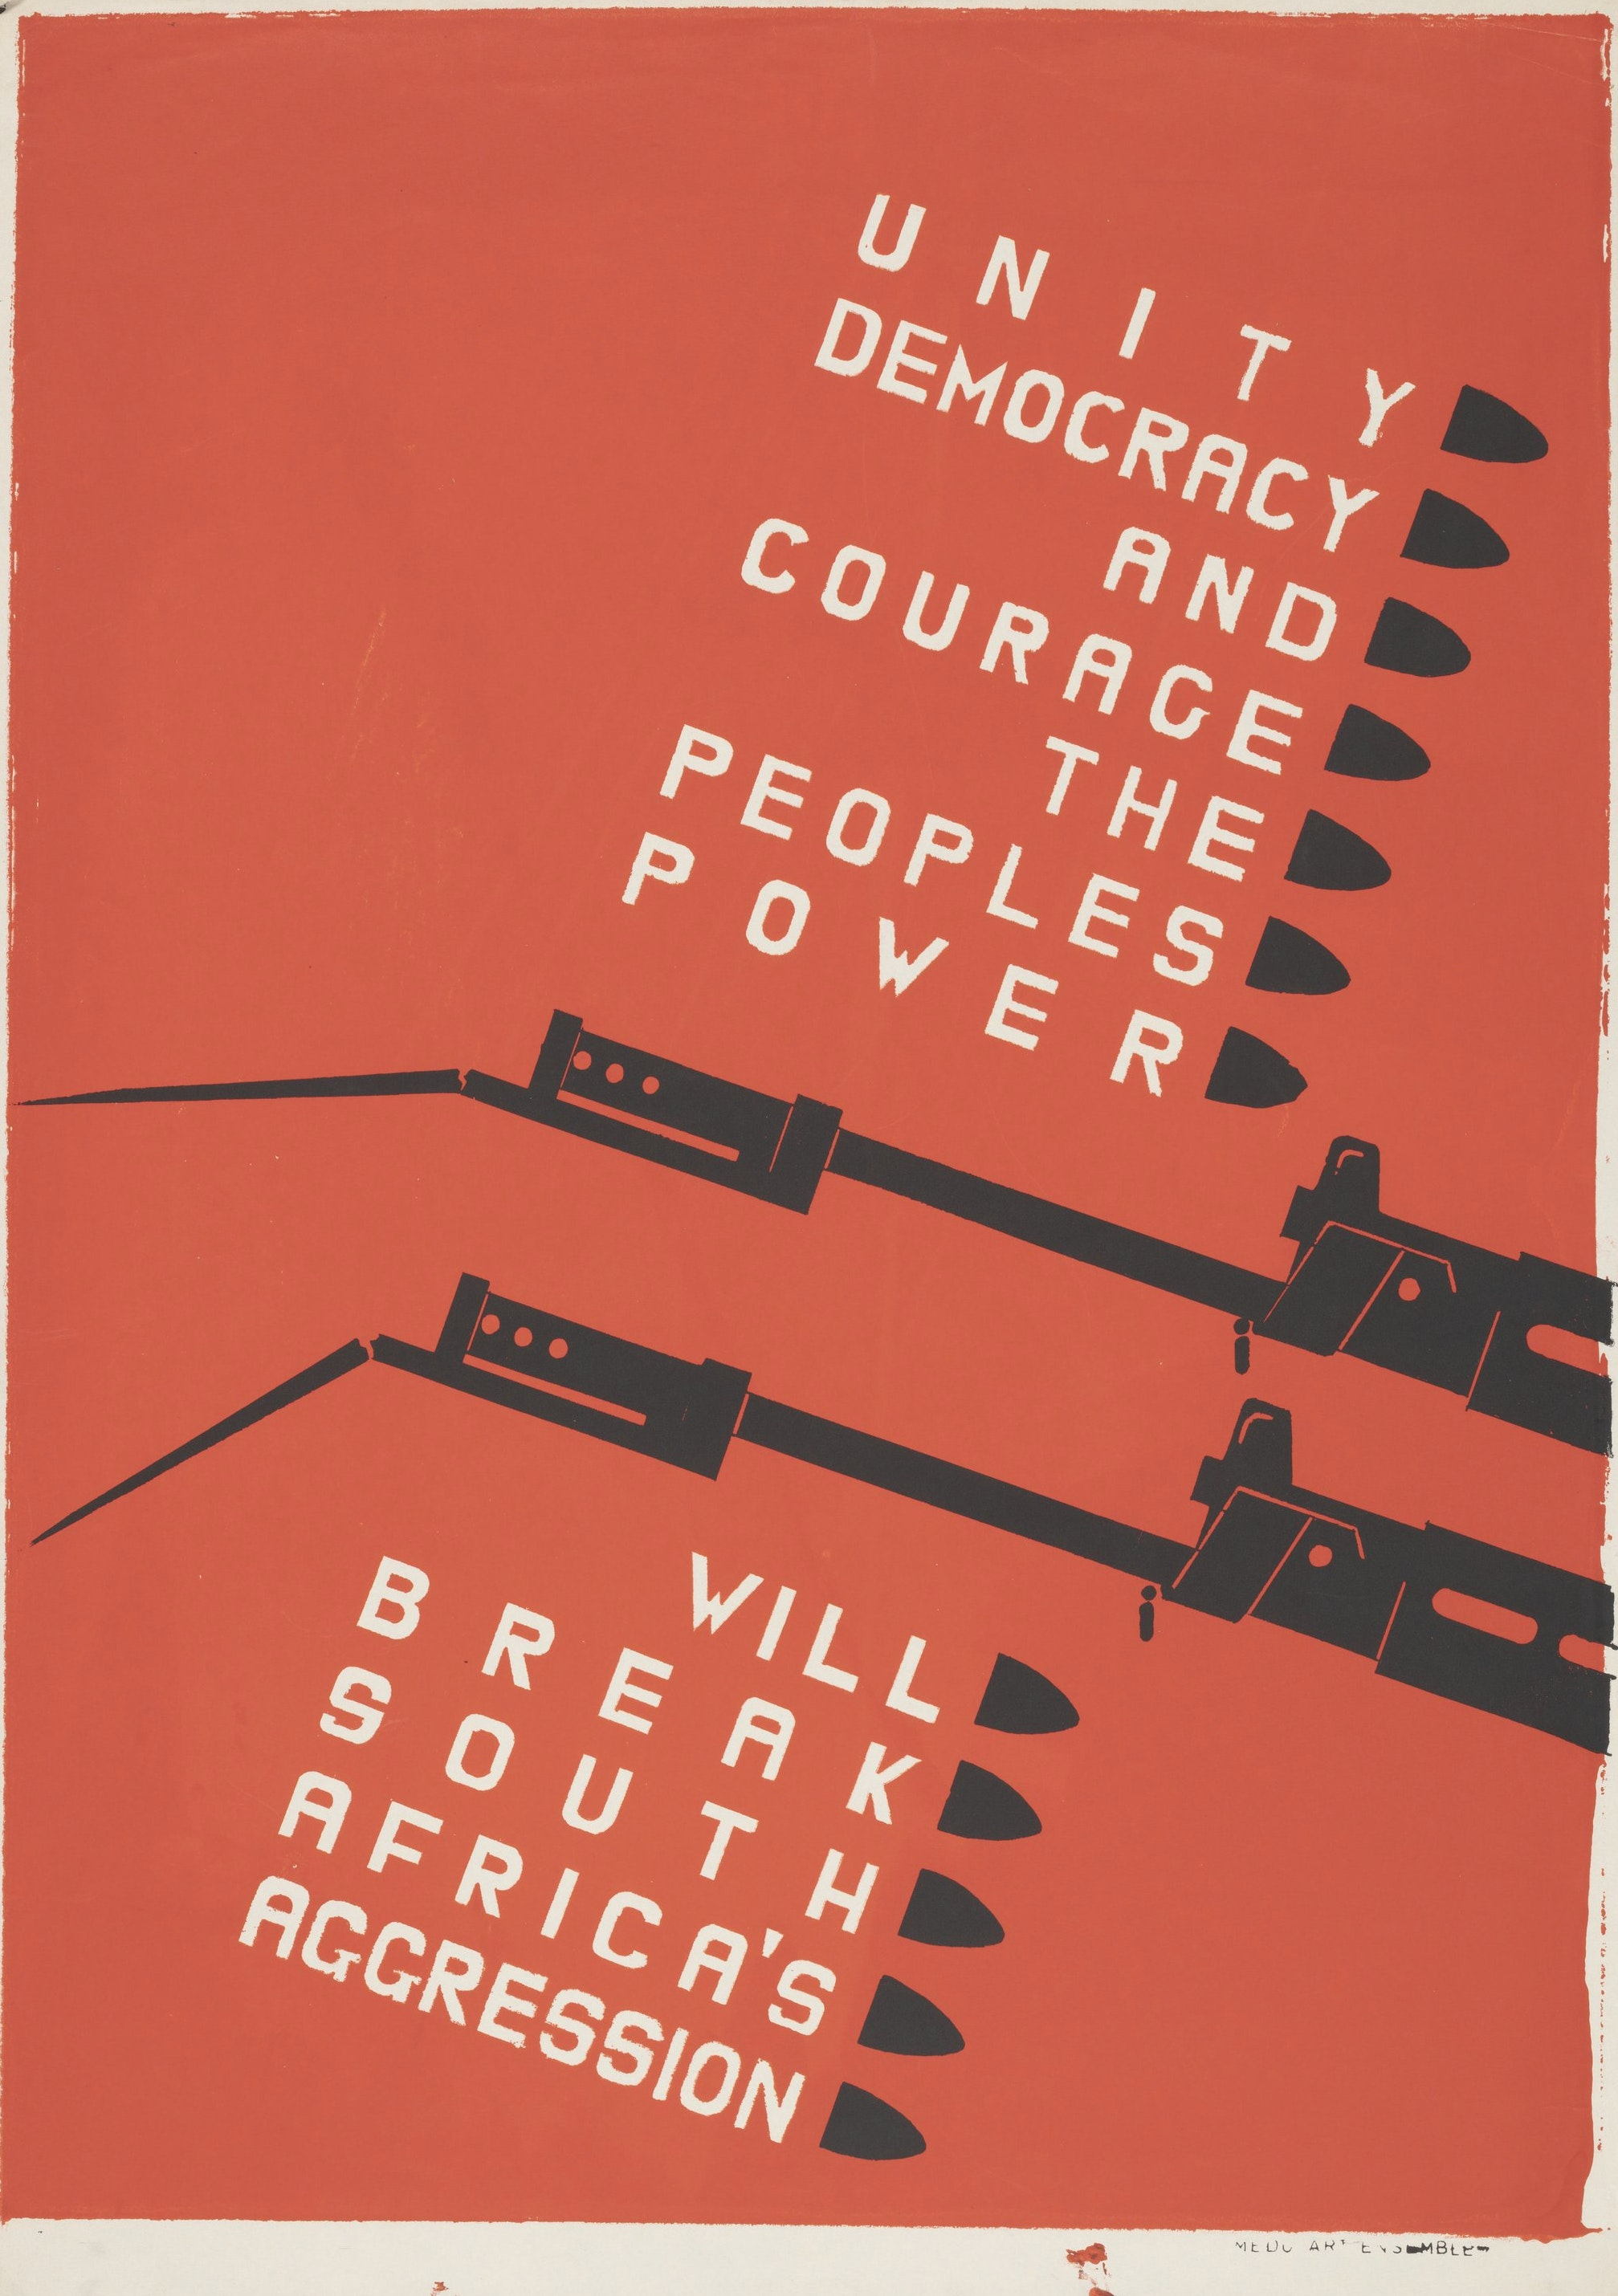 """A red poster that reads """"Unity Democracy and Courage The Peoples Power"""" and """"Will Break South Africa's Aggression"""" in white lettering."""